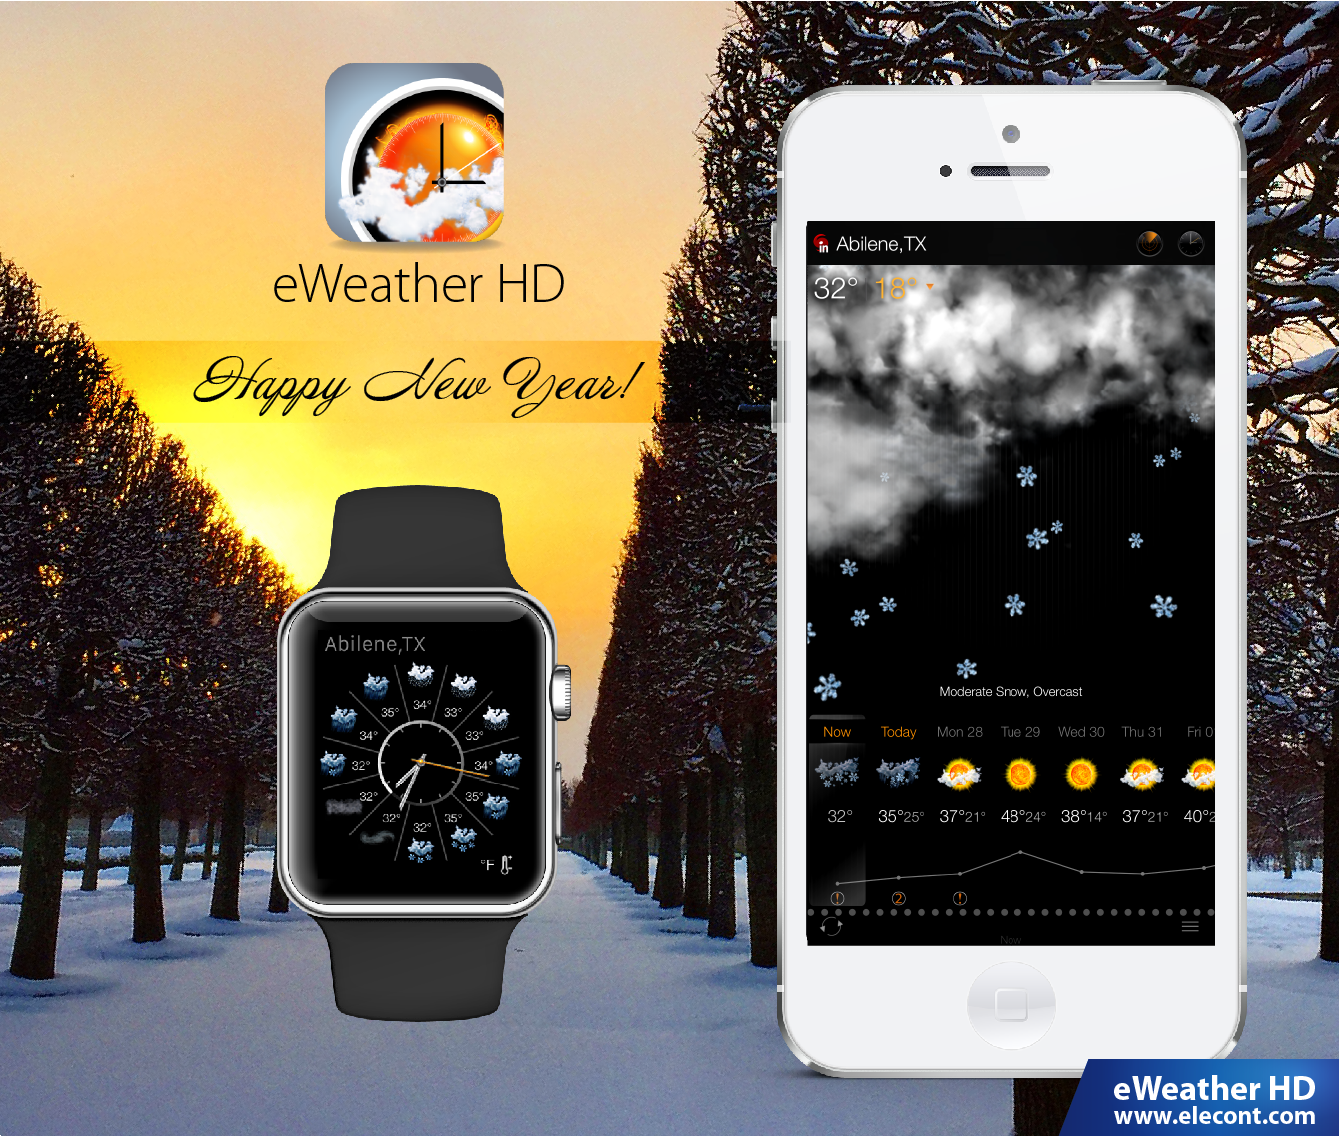 Plan your Holidays with new AppleWatch, iPhone and iPad